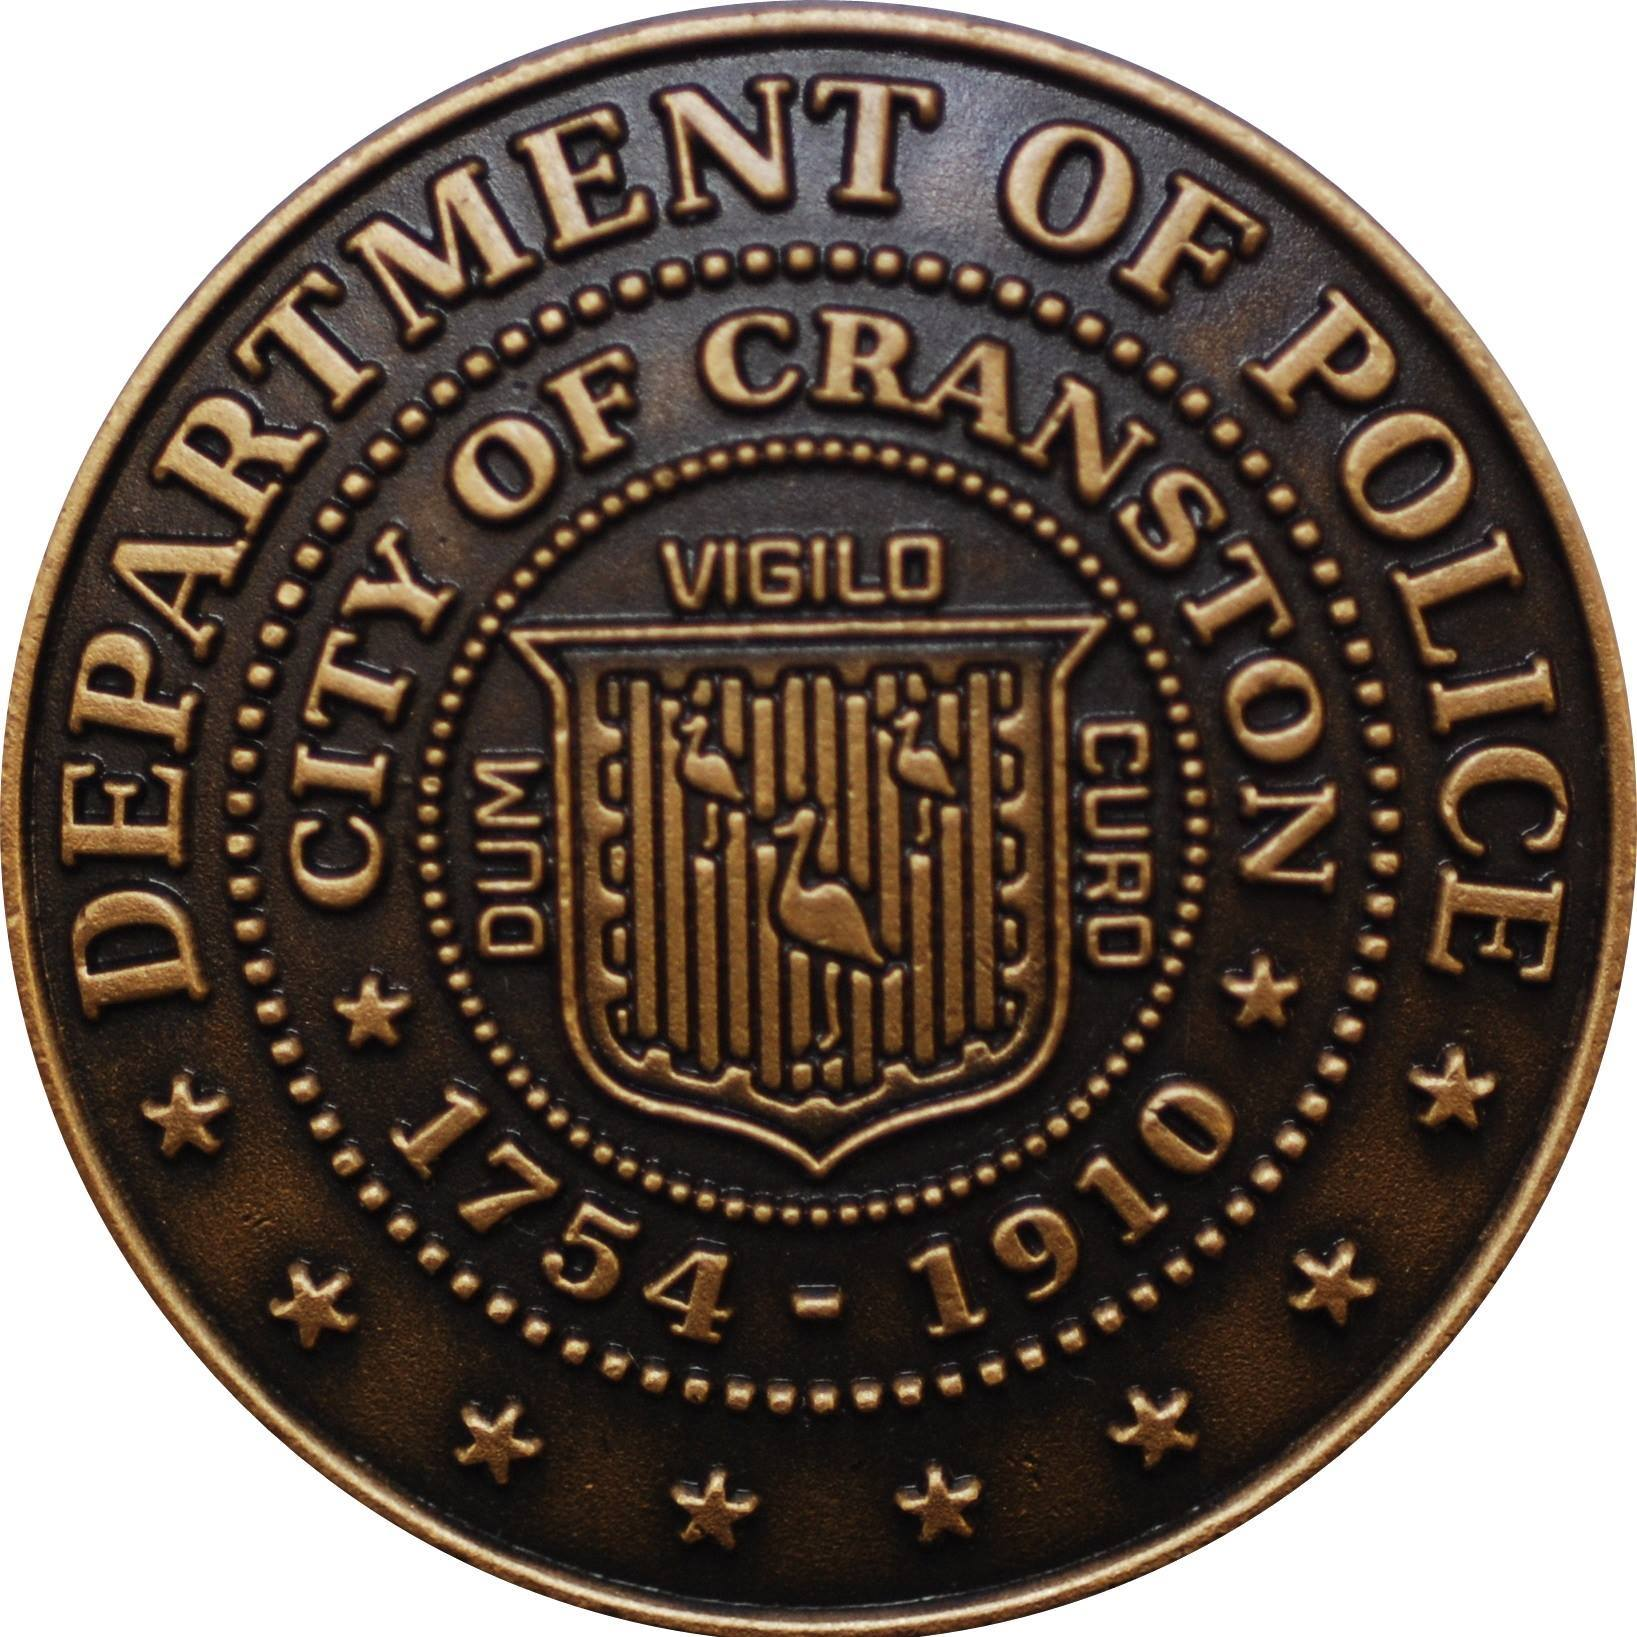 Cranston Police Department, RI Public Safety Jobs